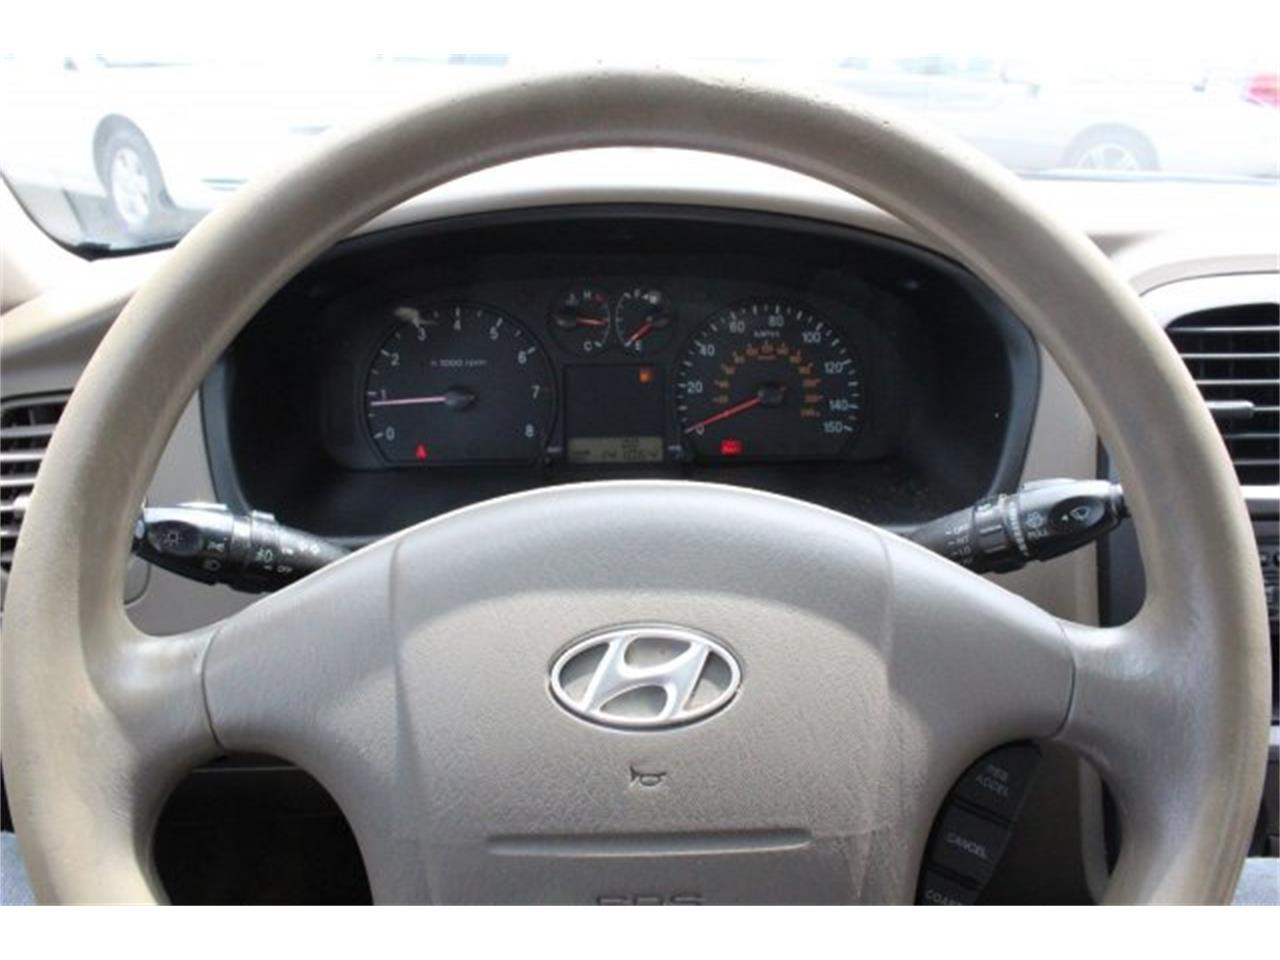 Large Picture of 2005 Hyundai Sonata located in Lynnwood Washington - $4,995.00 Offered by Carson Cars - JJGU